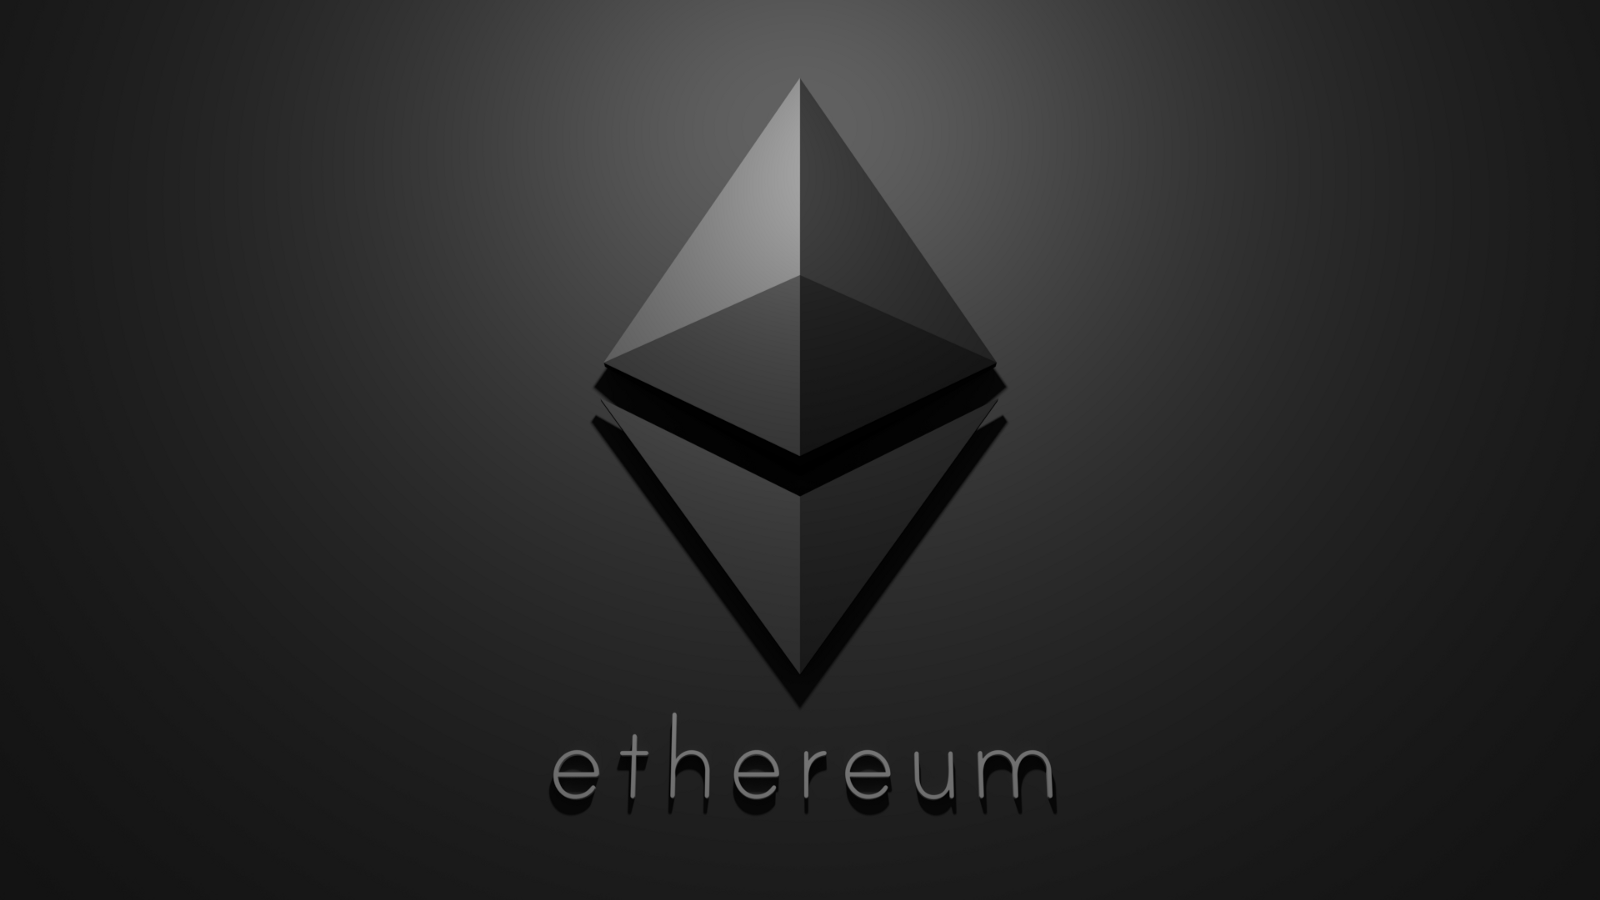 Ethereum Istanbul Imminent But ETH Price Still Plunging 13